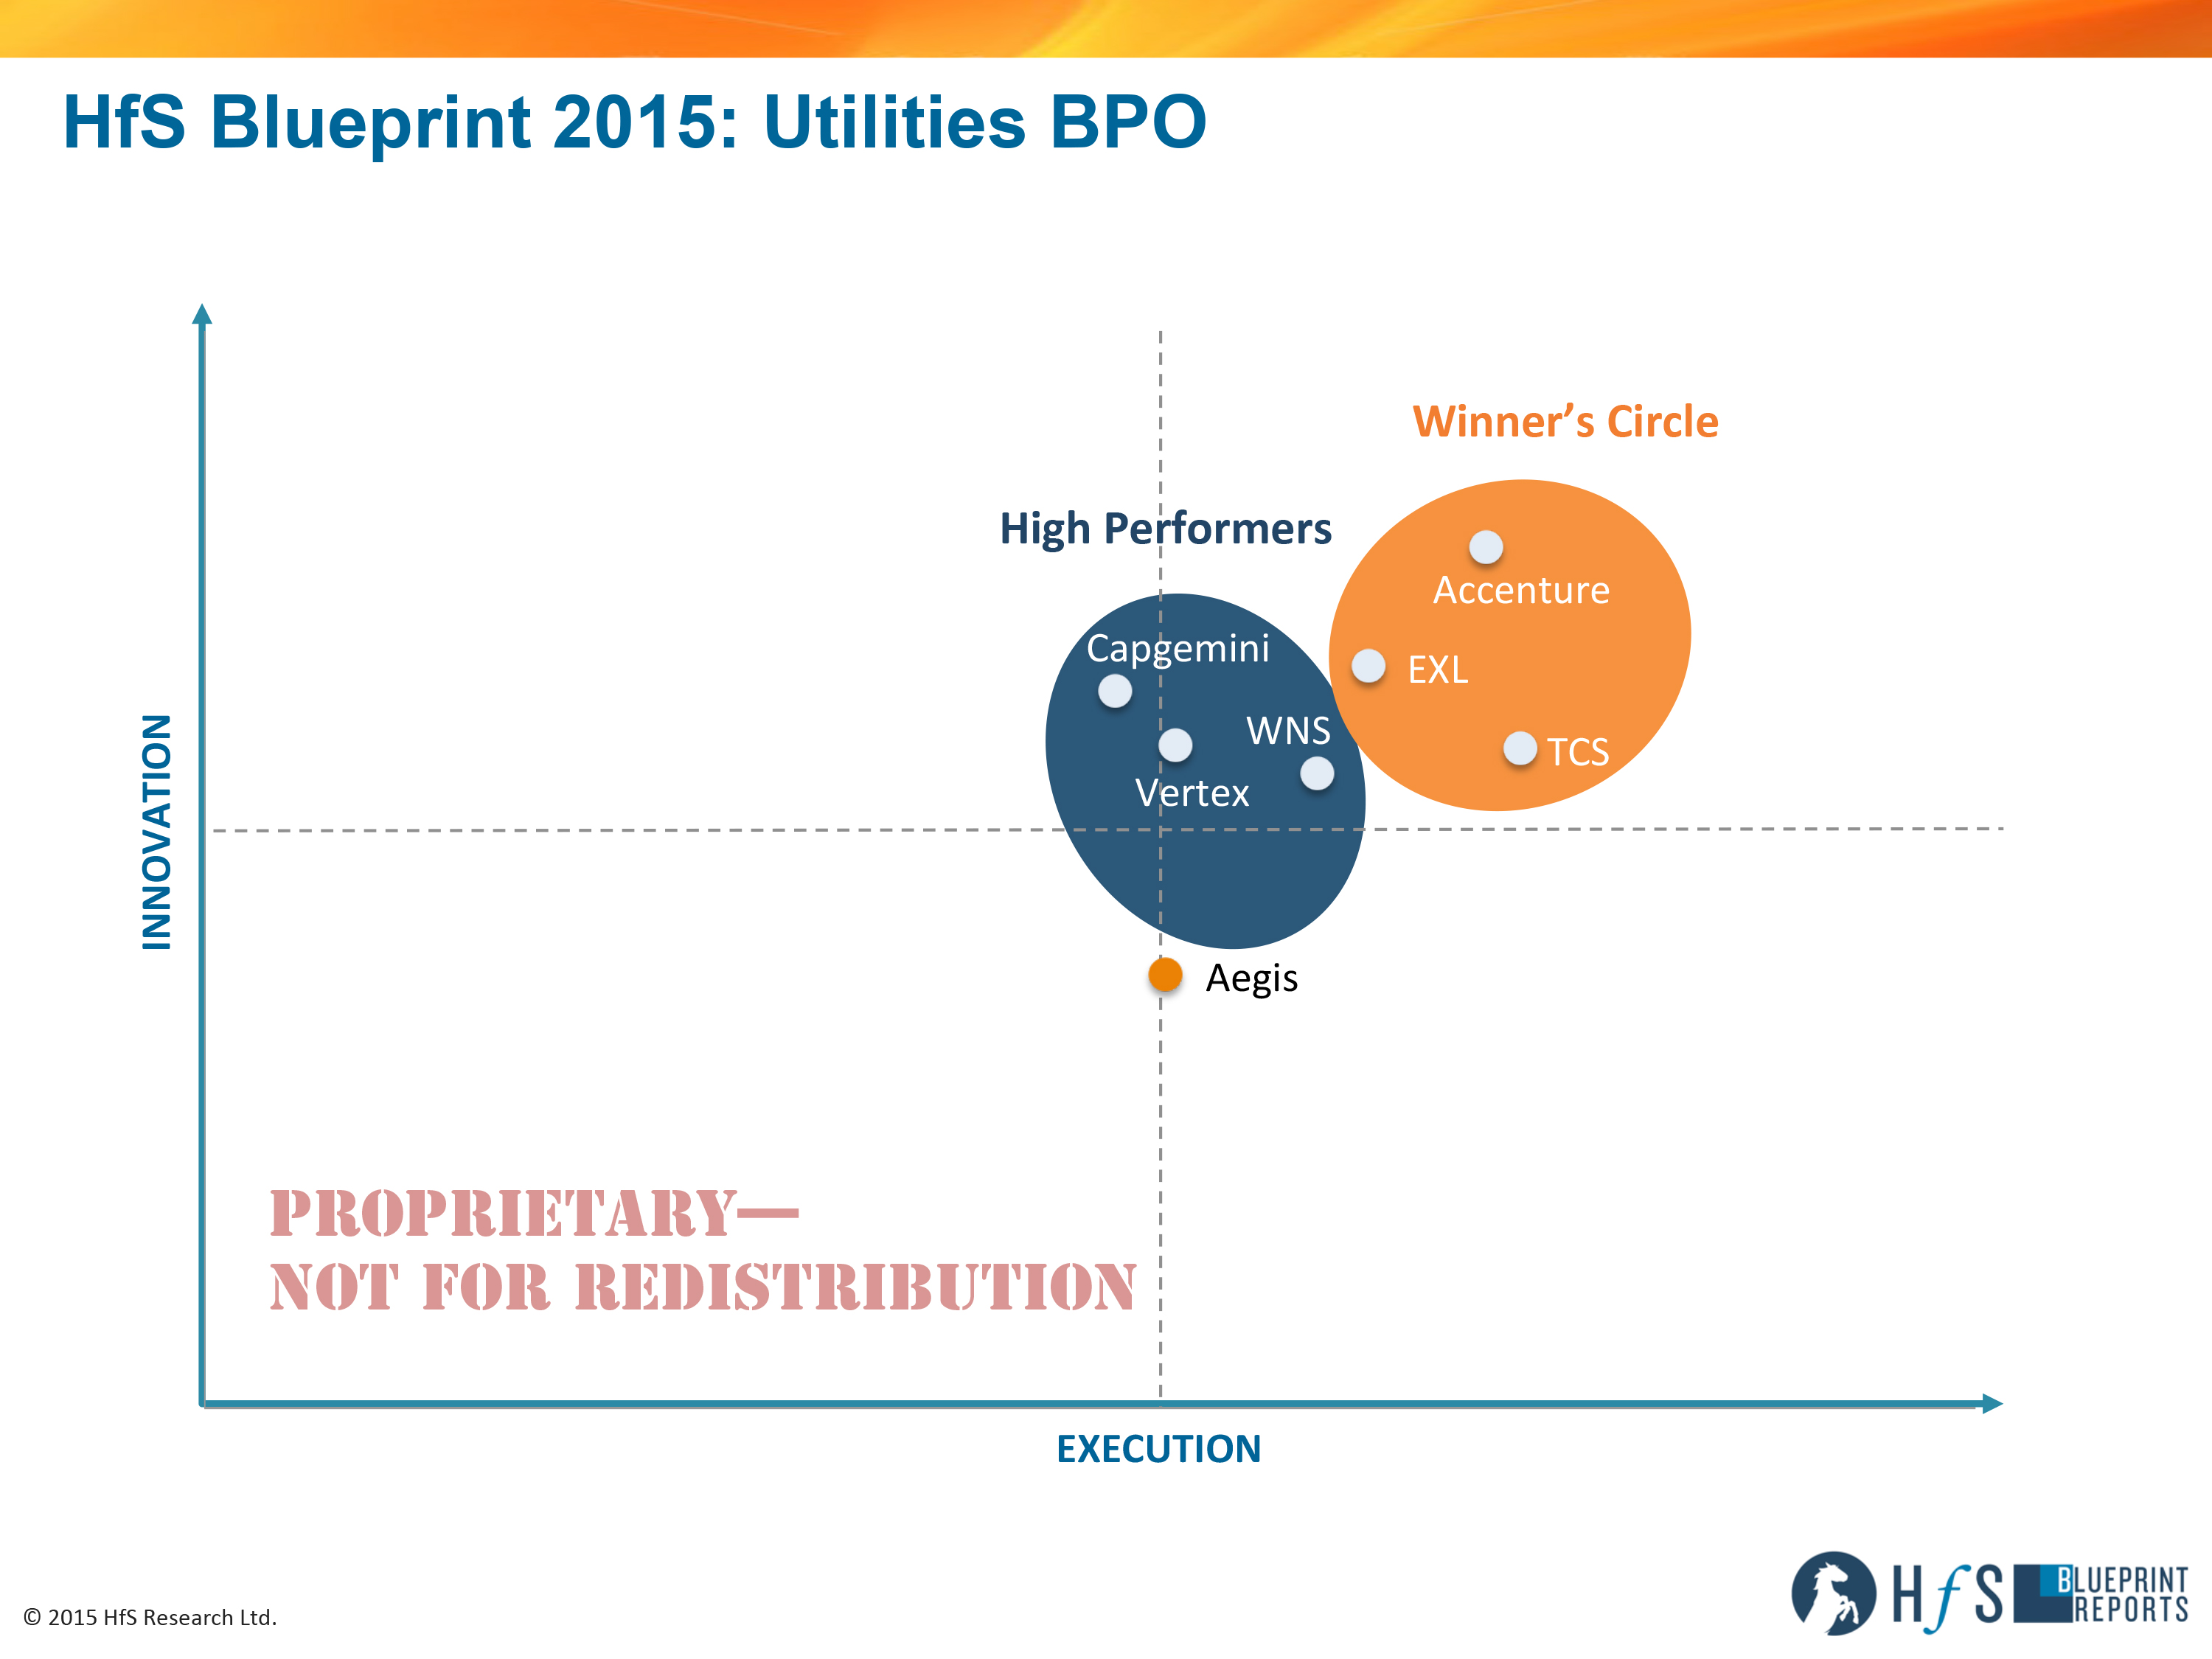 Accenture exl and tcs enter winners circle in hfs utilities bpo rs1512hfs blueprint utilities bpo 2015 blog axis malvernweather Gallery